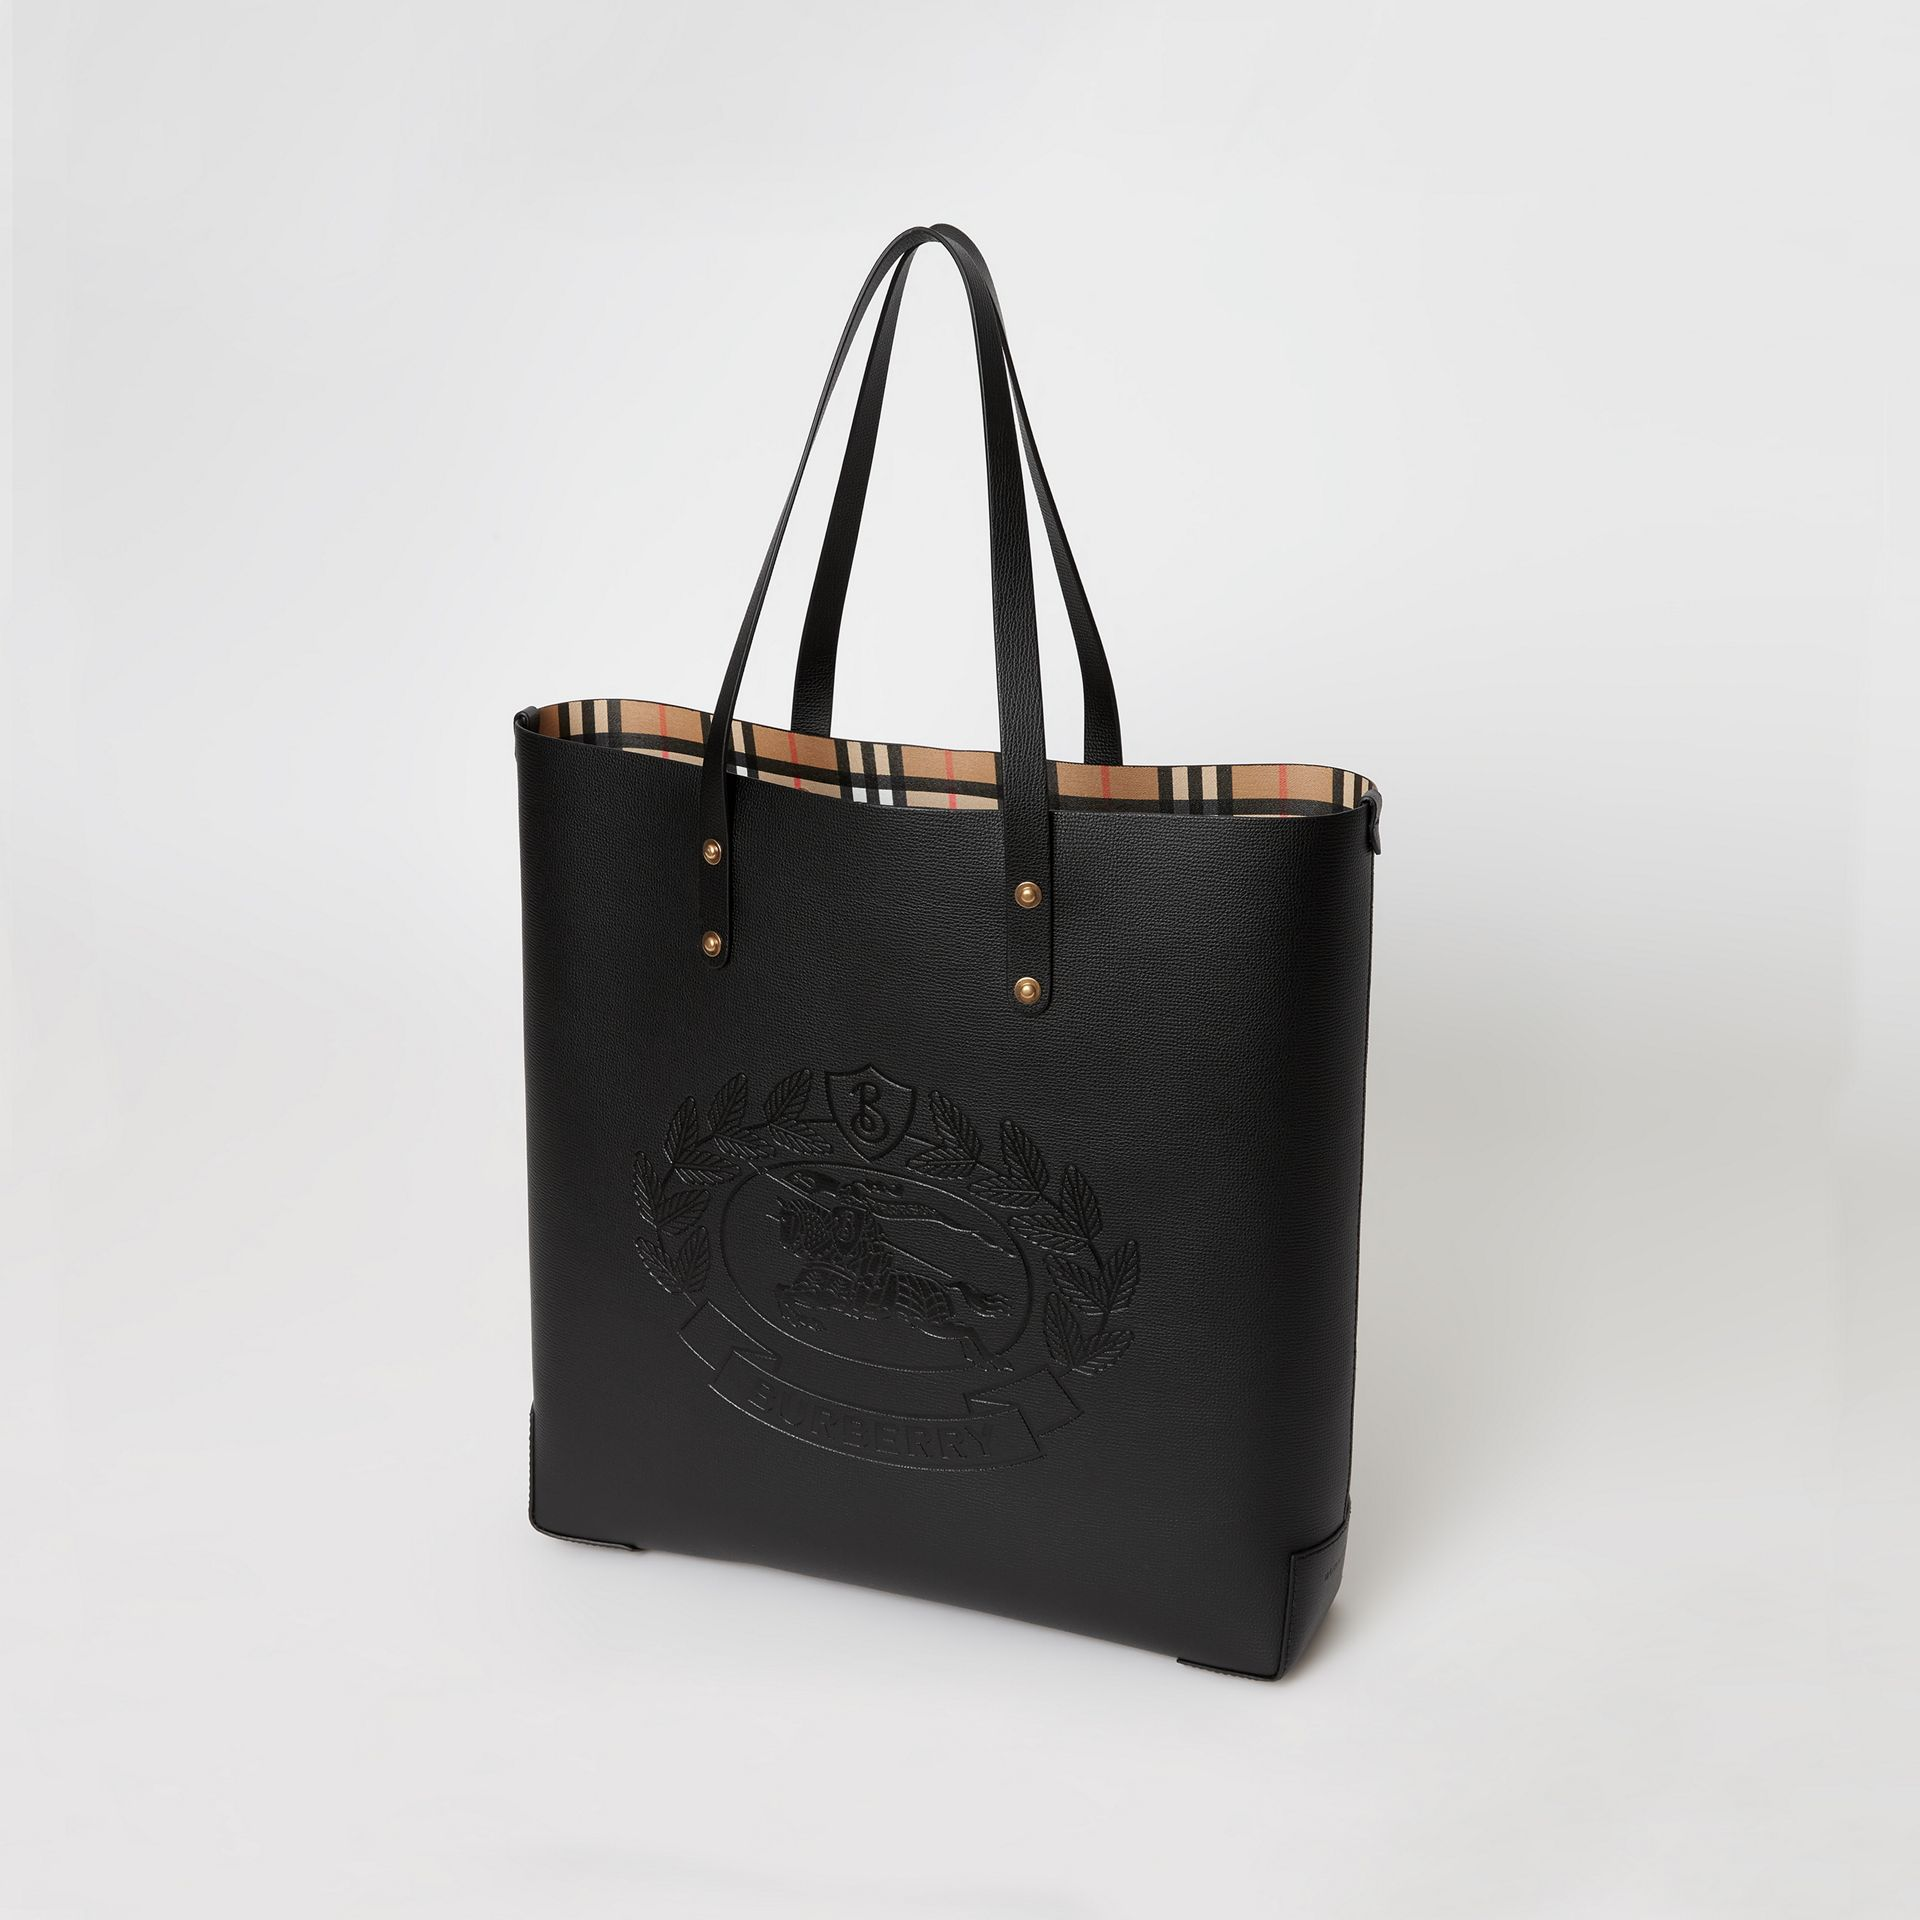 Embossed Crest Leather Tote in Black | Burberry - gallery image 2